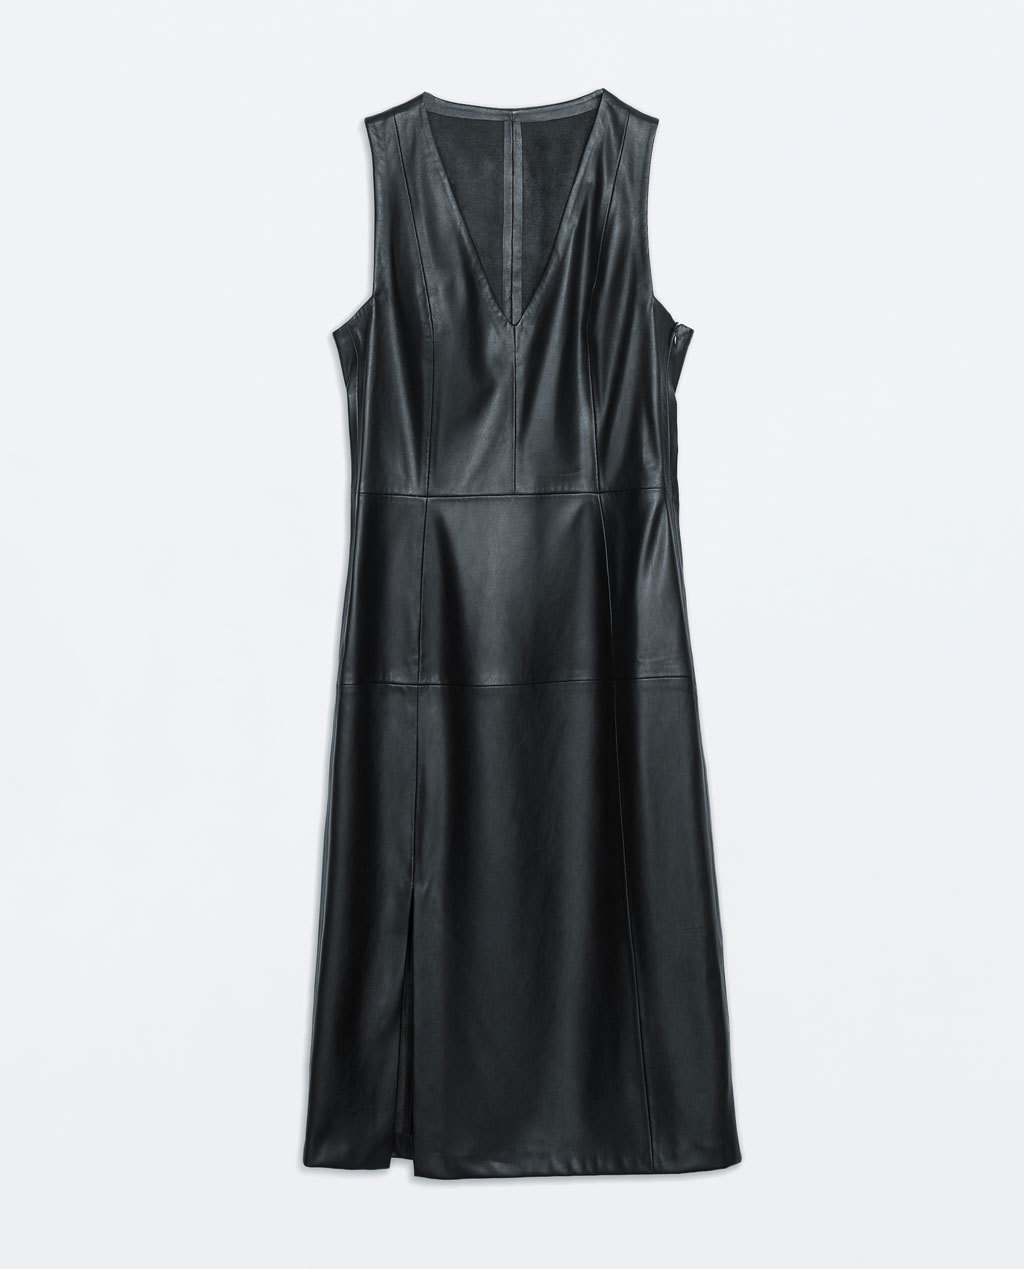 Faux Leather Dress - style: shift; length: below the knee; neckline: low v-neck; fit: tailored/fitted; pattern: plain; sleeve style: sleeveless; predominant colour: black; occasions: evening, creative work; hip detail: slits at hip; sleeve length: sleeveless; texture group: leather; pattern type: fabric; fibres: pvc/polyurethene - 100%; season: a/w 2014